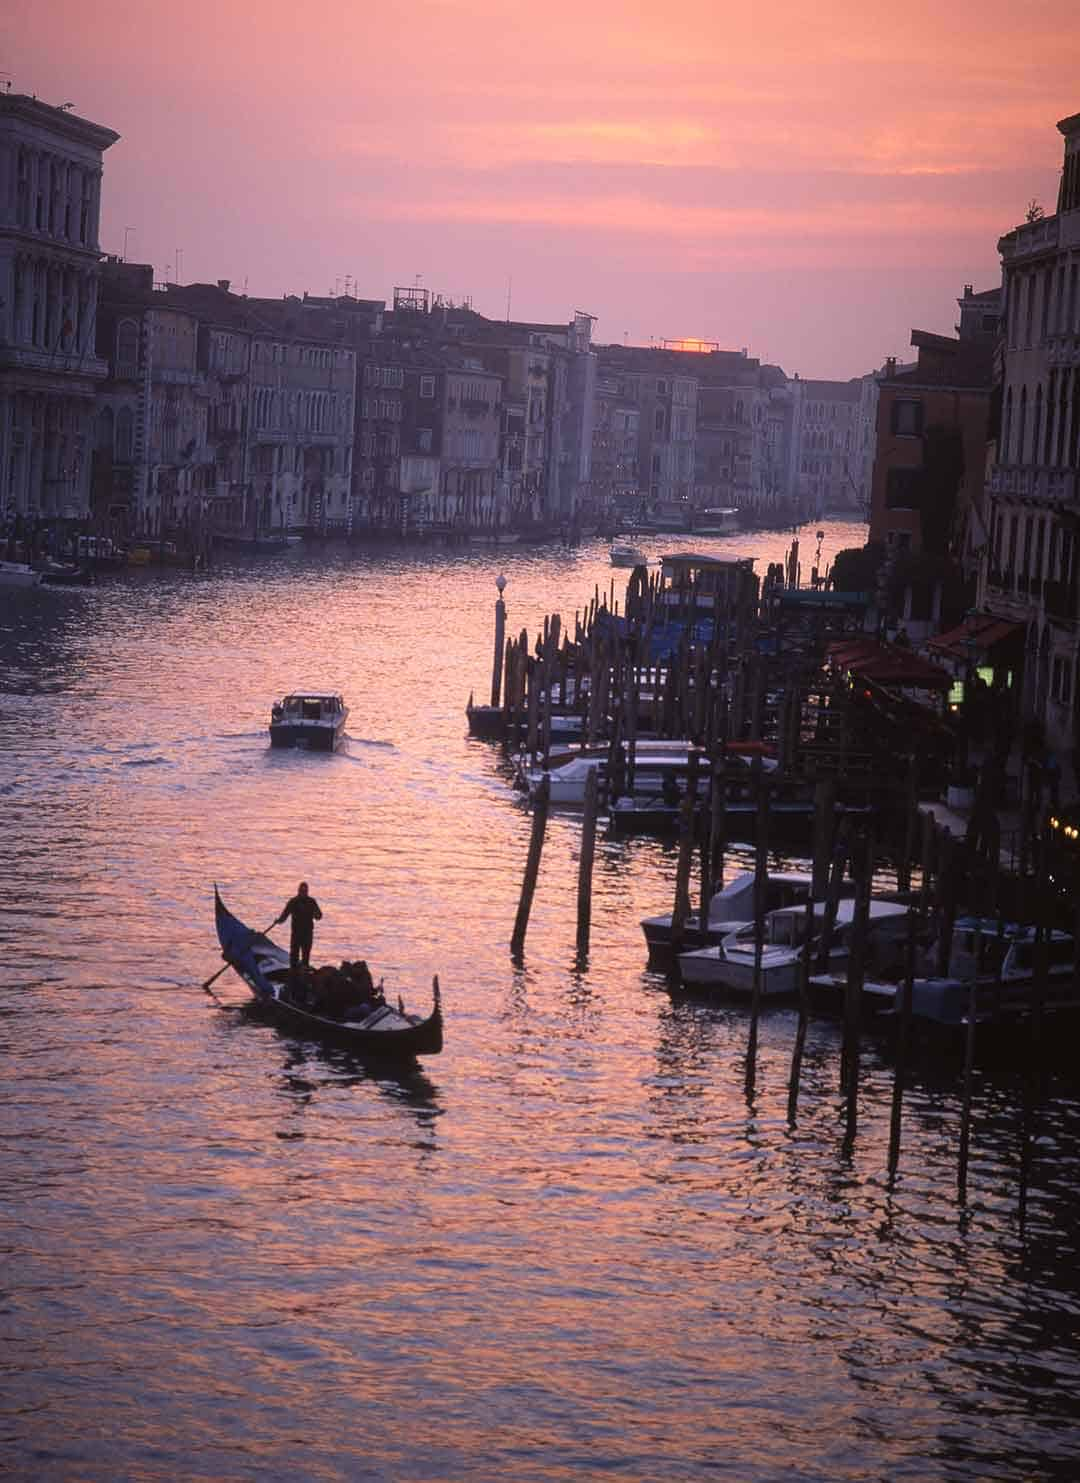 Image of gondola on the Grand Canal, Venice, at sunset